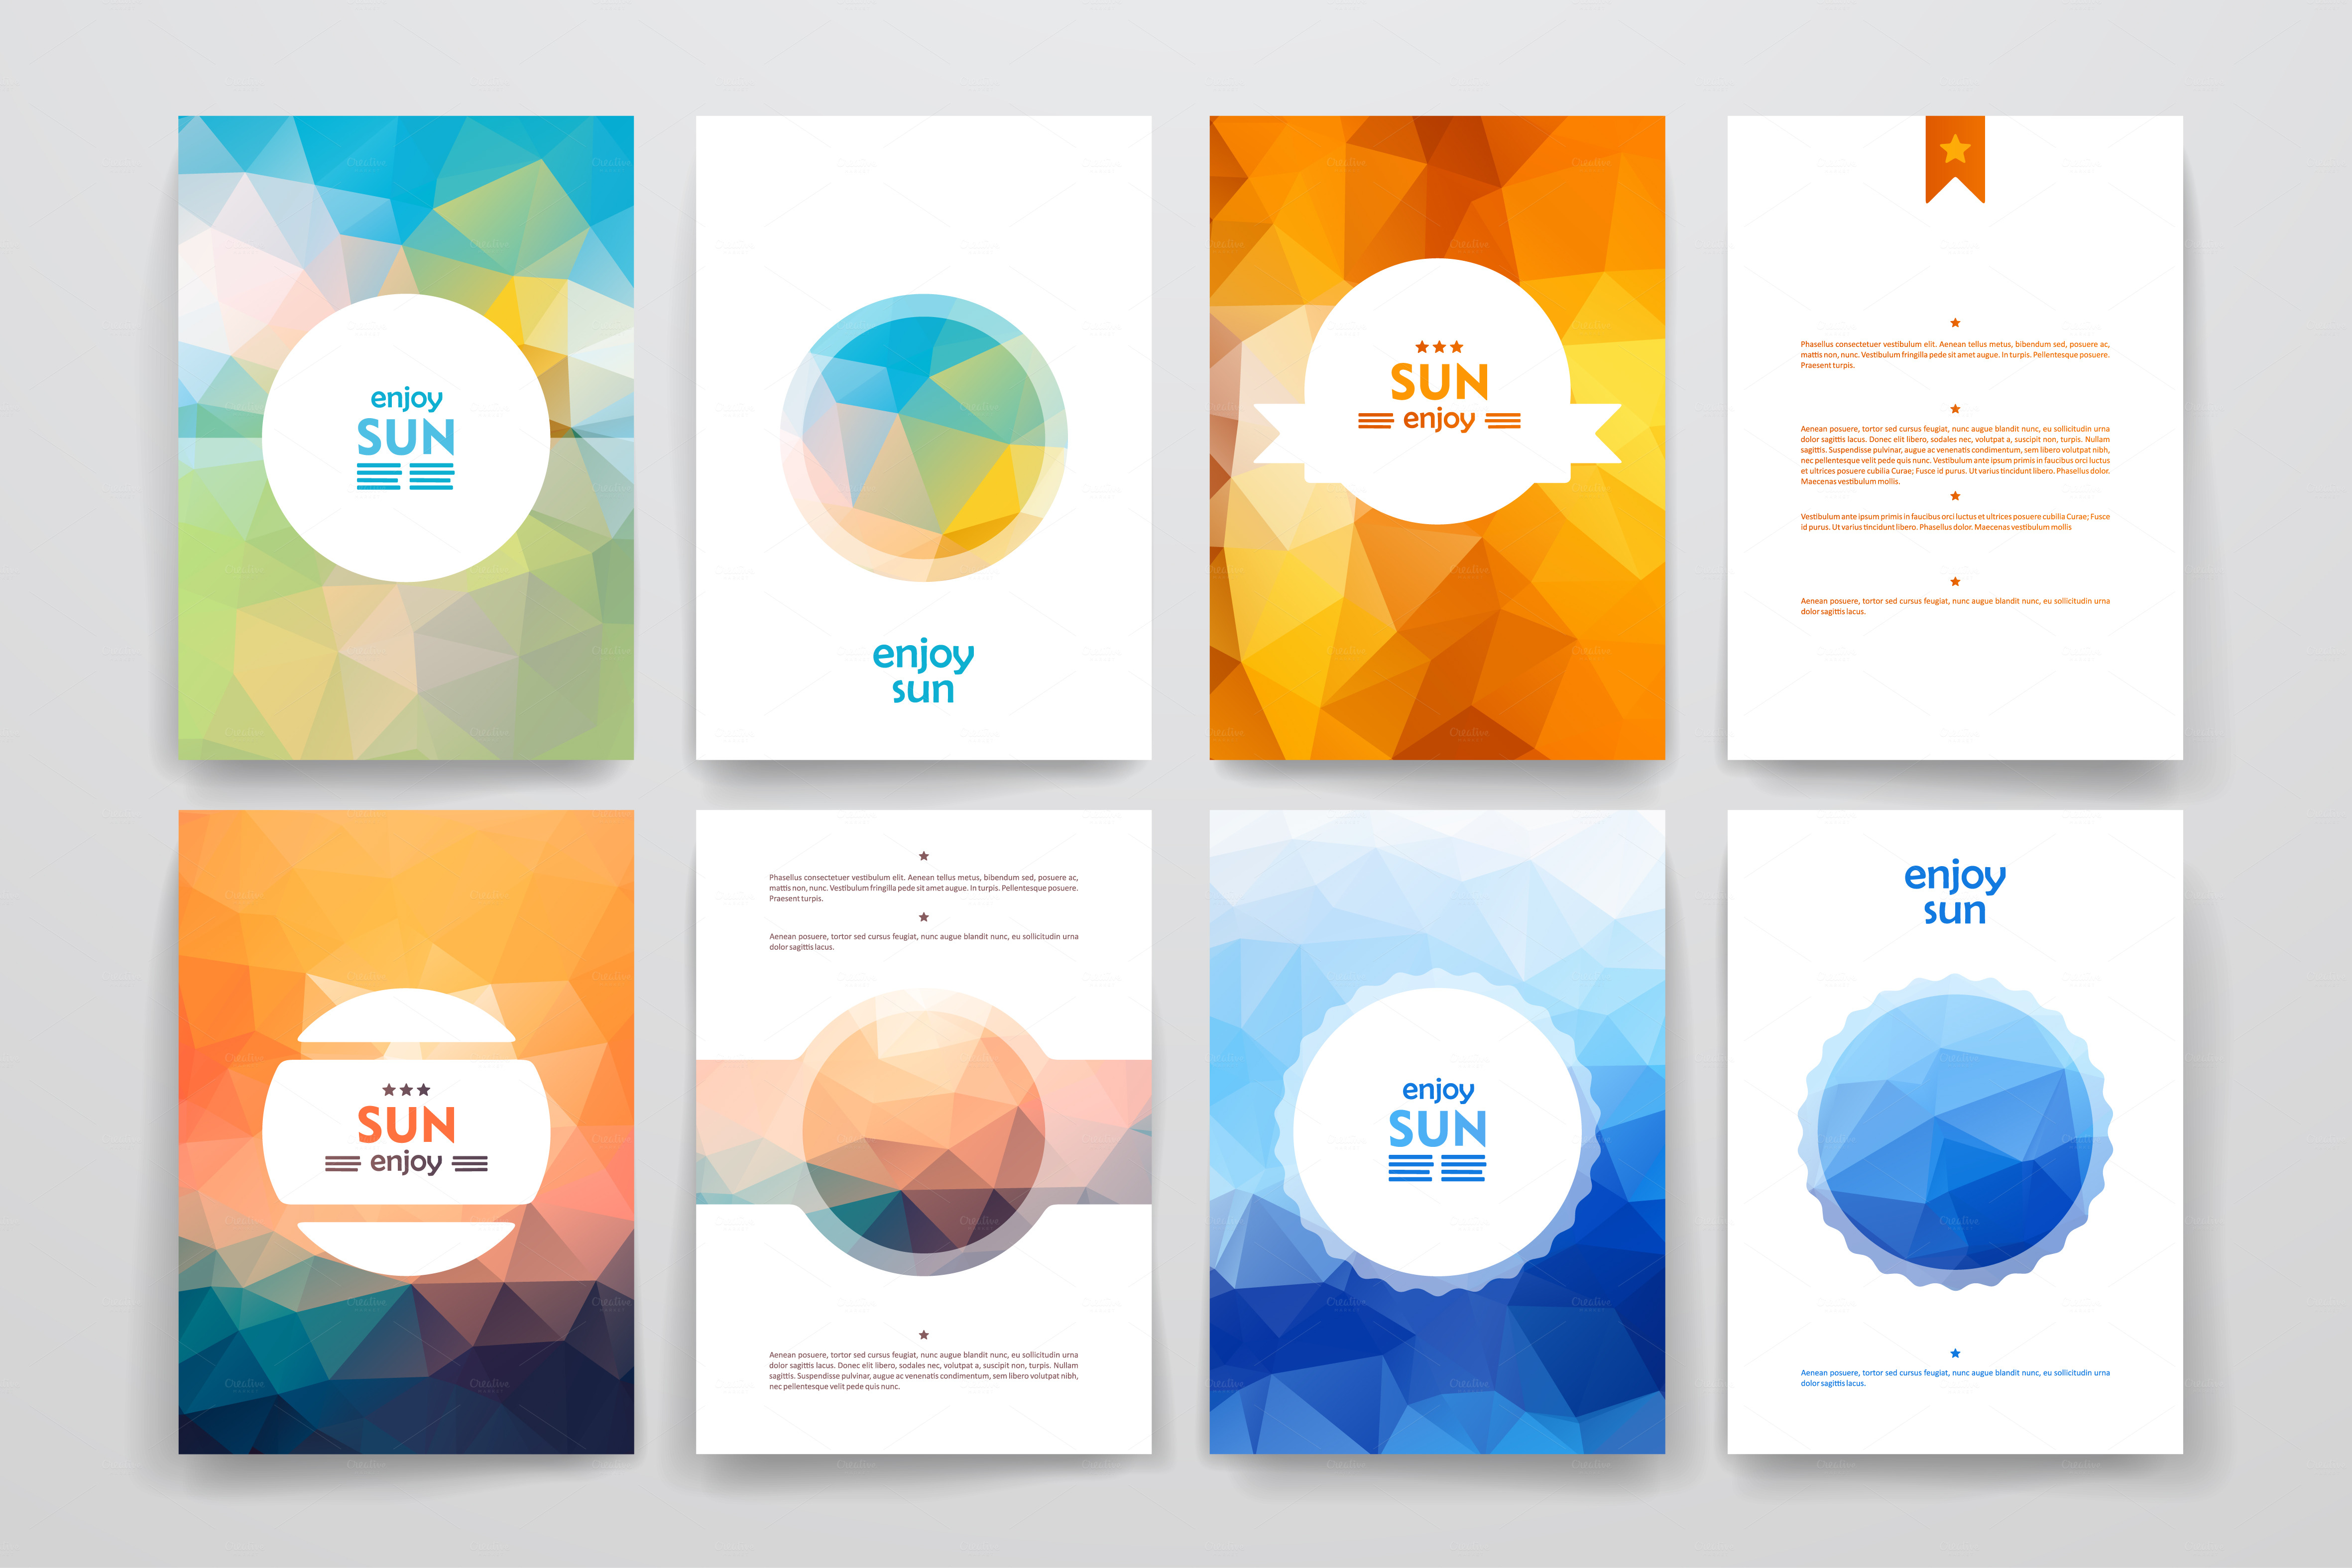 Sun brochures brochure templates on creative market for Editable brochure templates